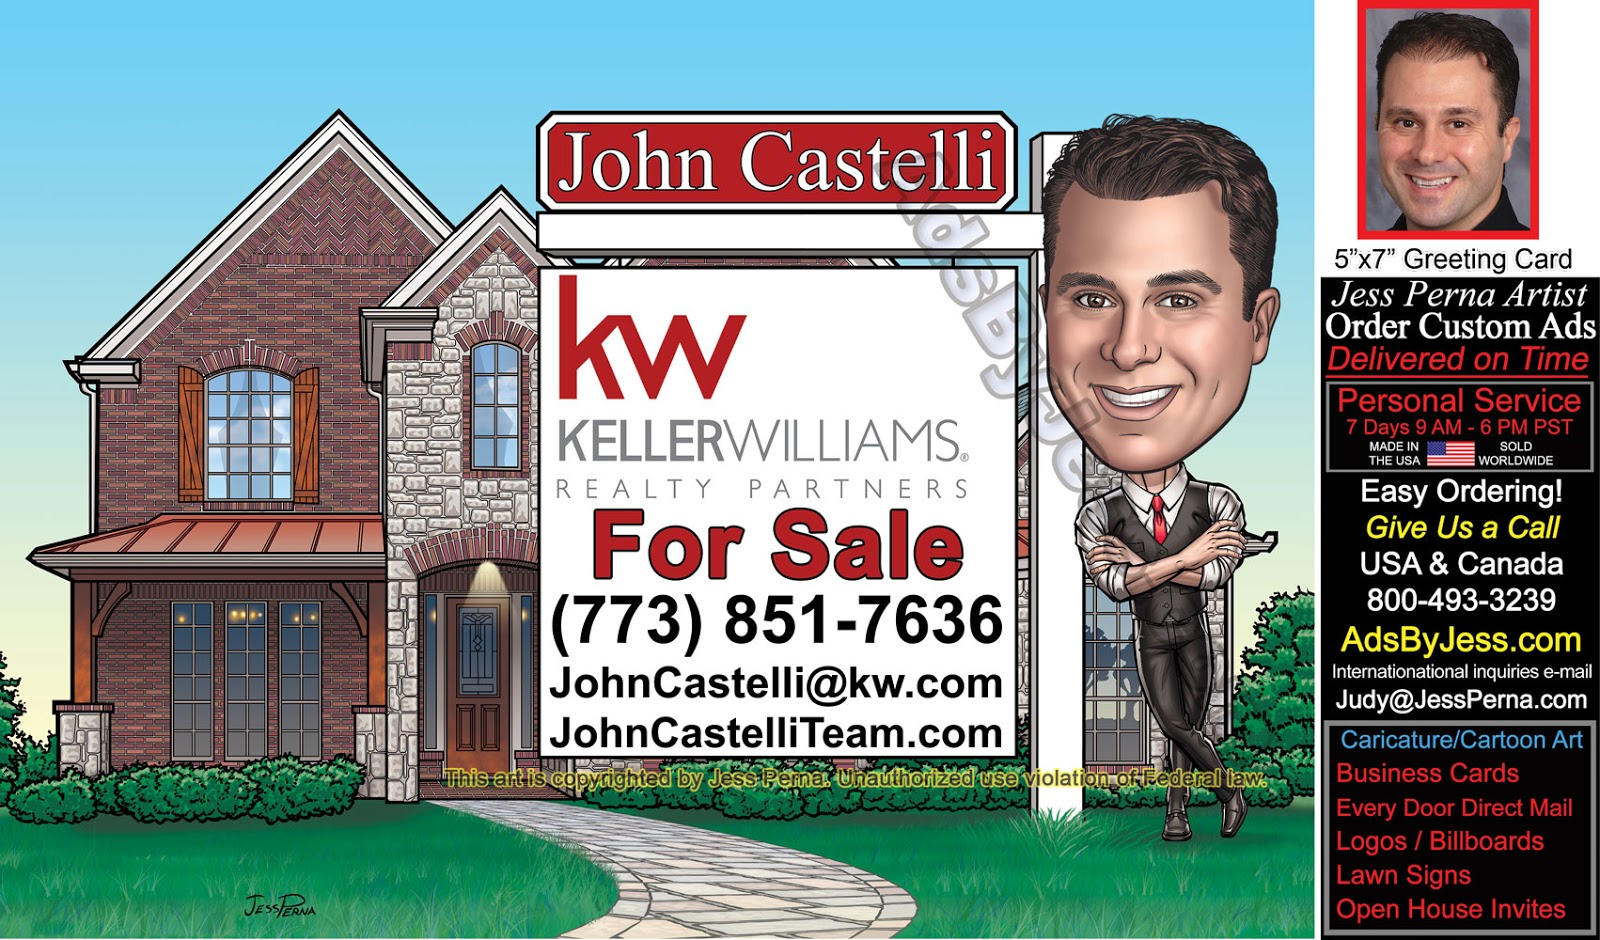 How to order ad cartoons and caricatures from a freelance order kw for sale sign business card ad reheart Image collections